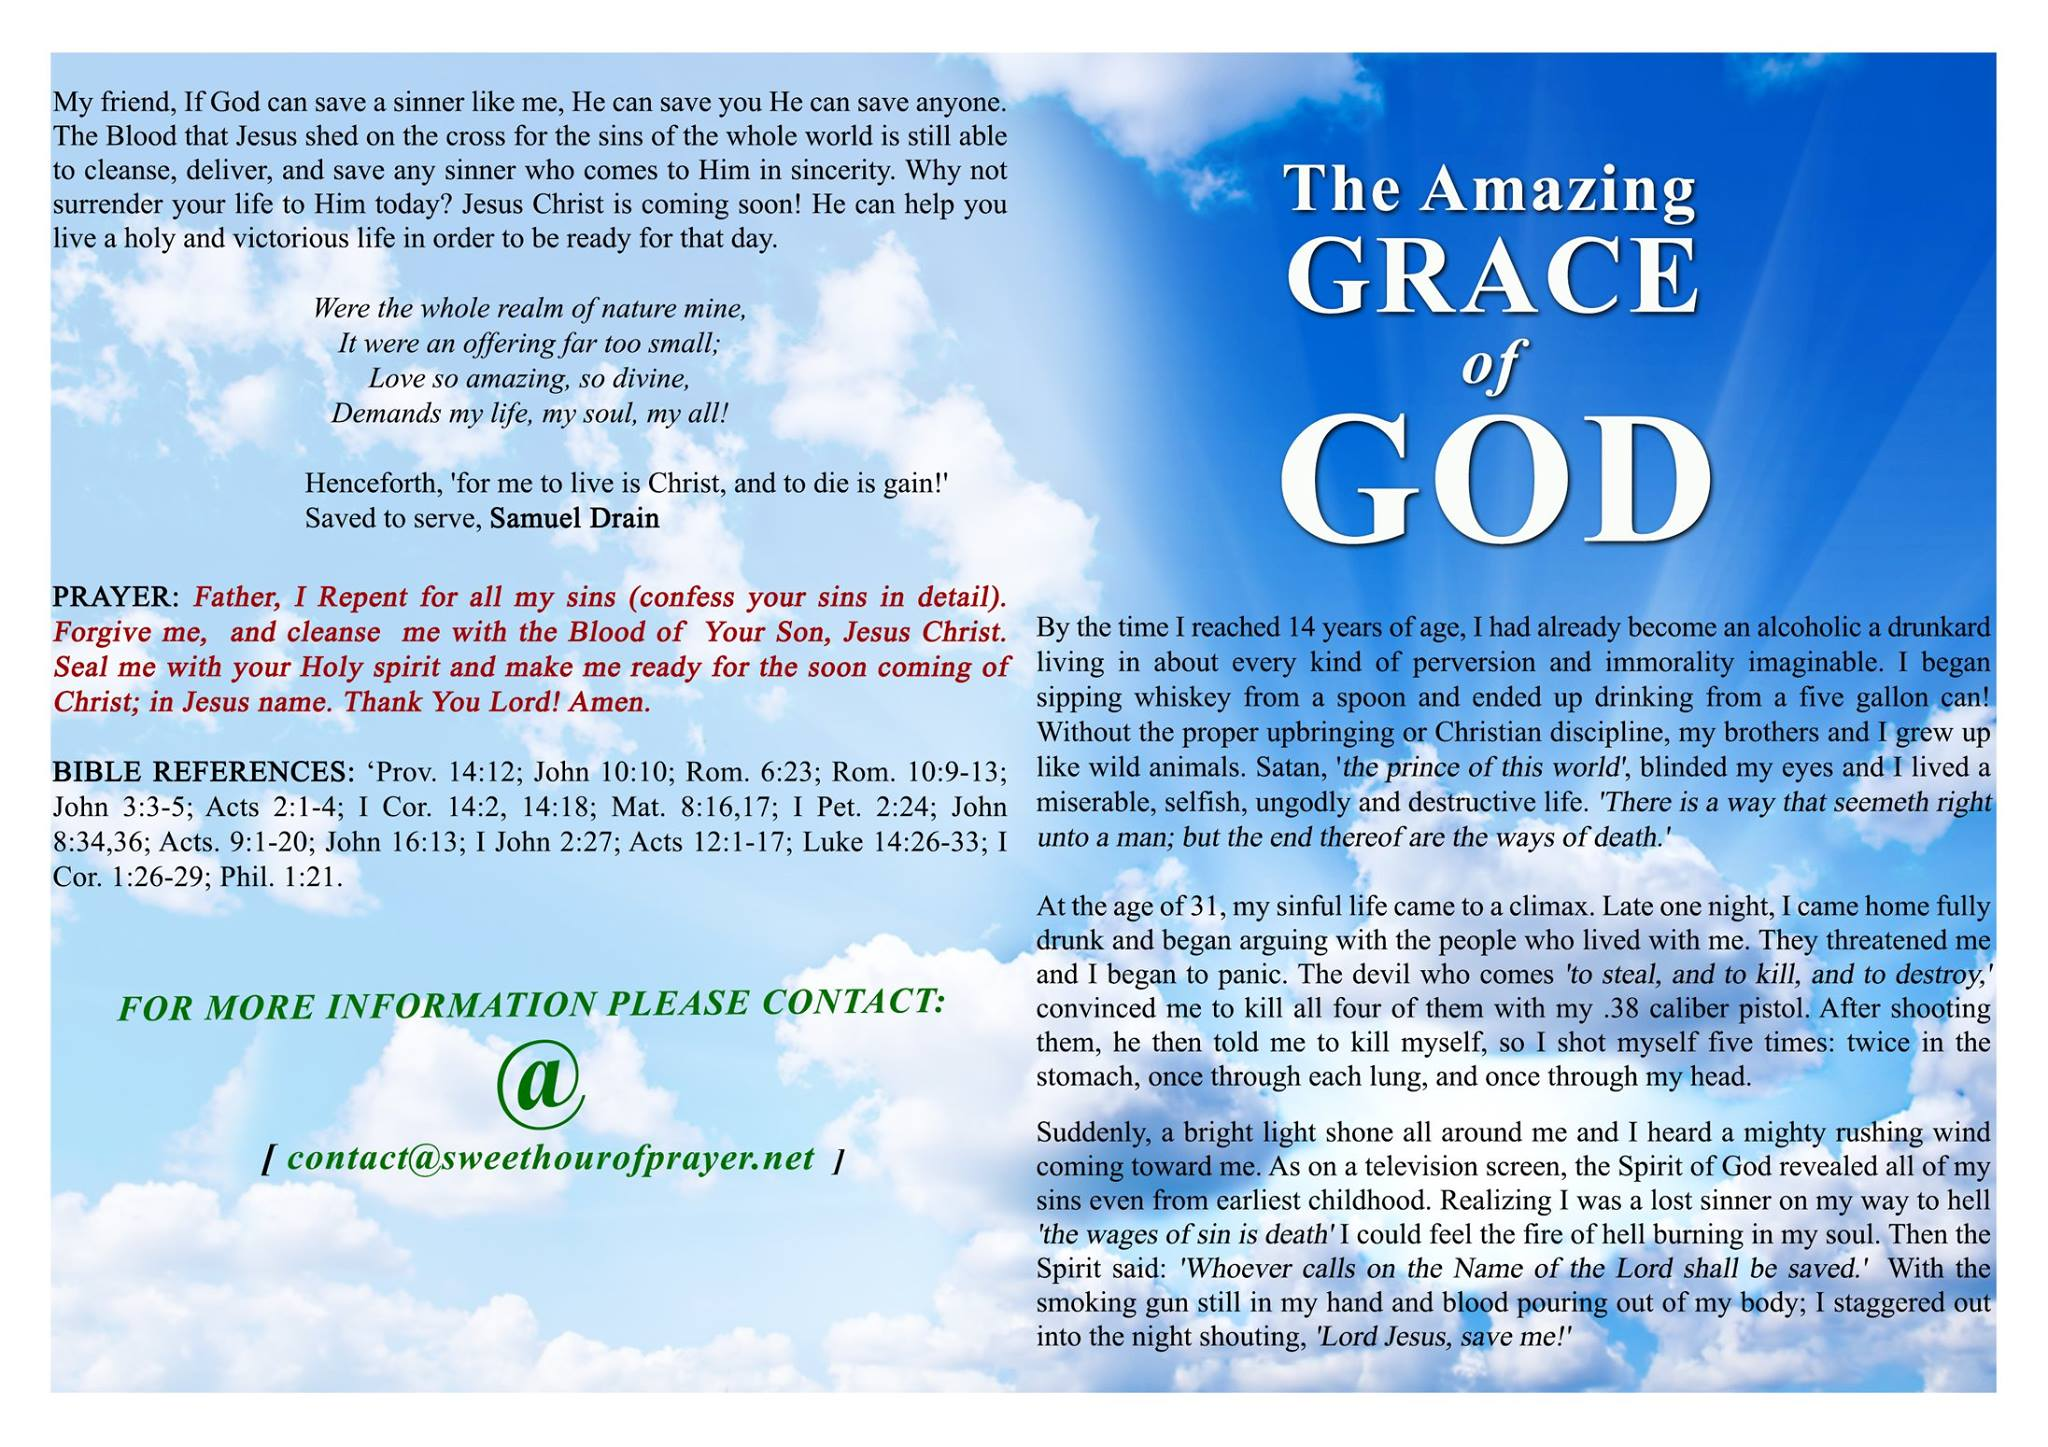 Amazing grace of God